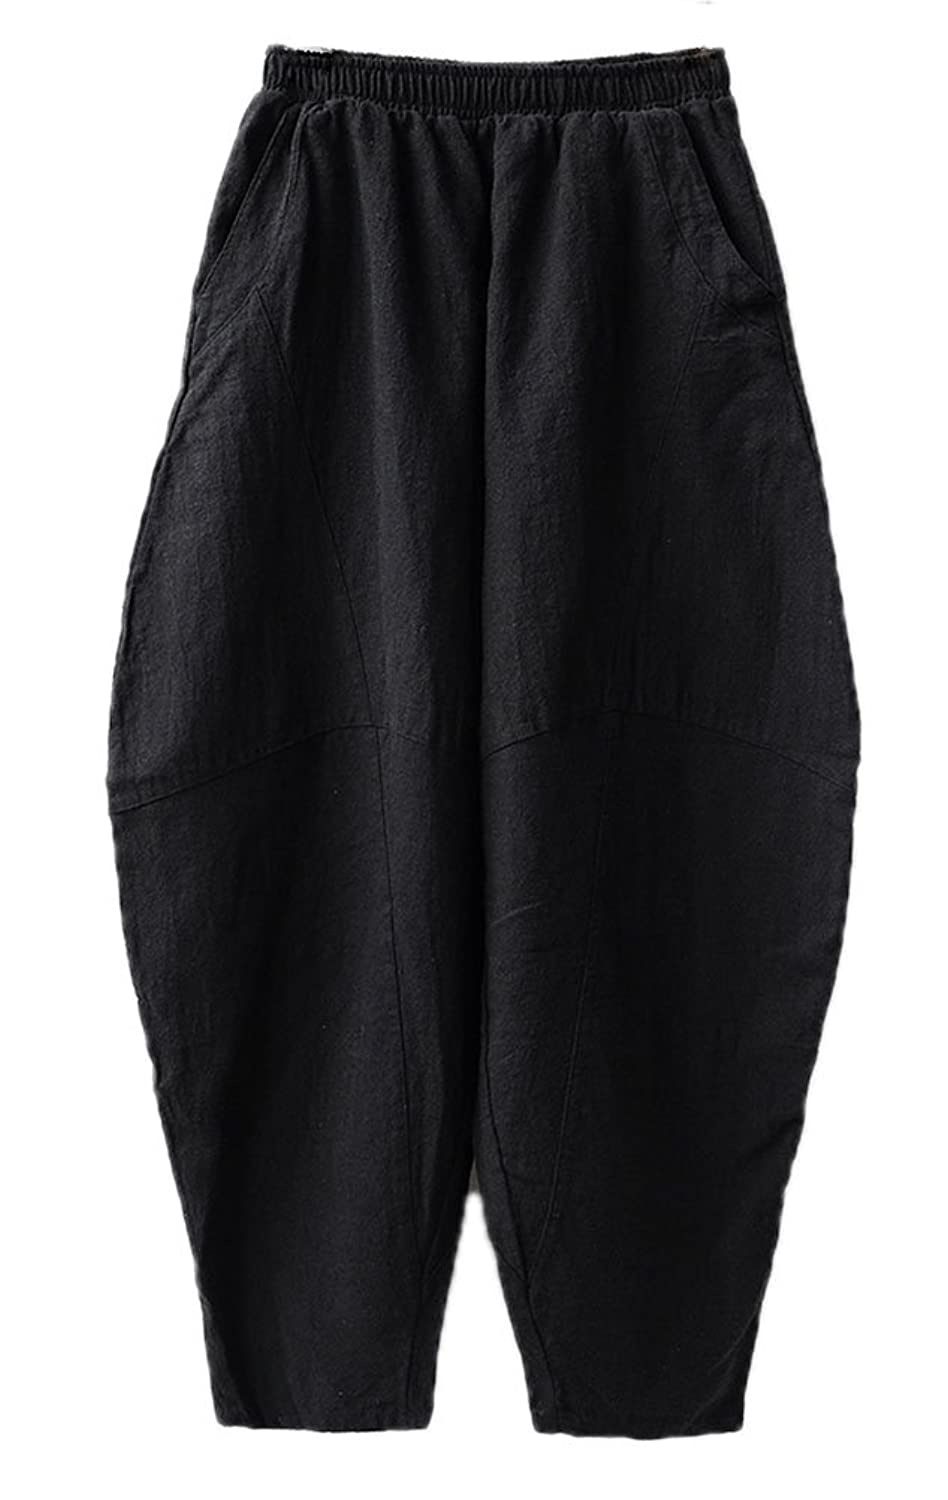 Soojun Women's Casual Baggy Linen Pants Yogo Bloomers Trousers